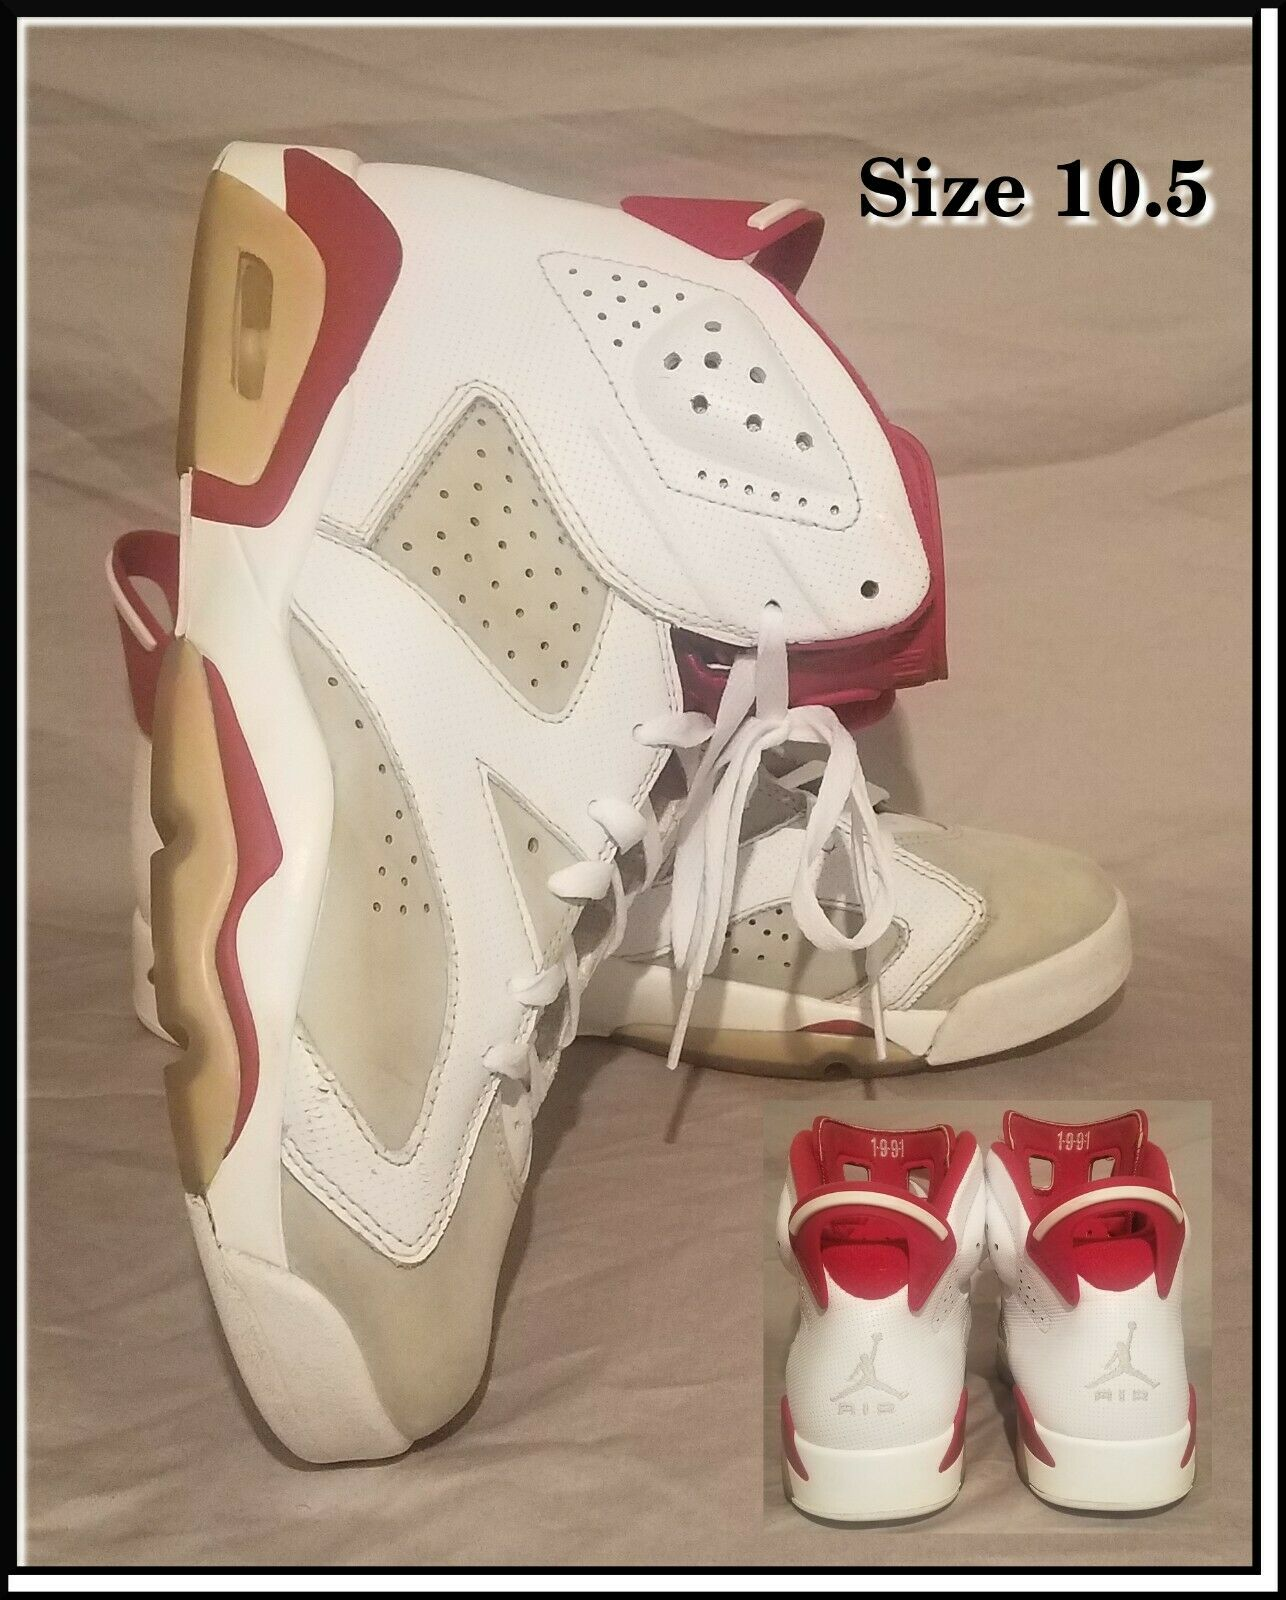 Air Jordan Retro 6 6 6 VI Size 10.5 Alternate White Red 384664-113 Men's Sneakers a1eb38